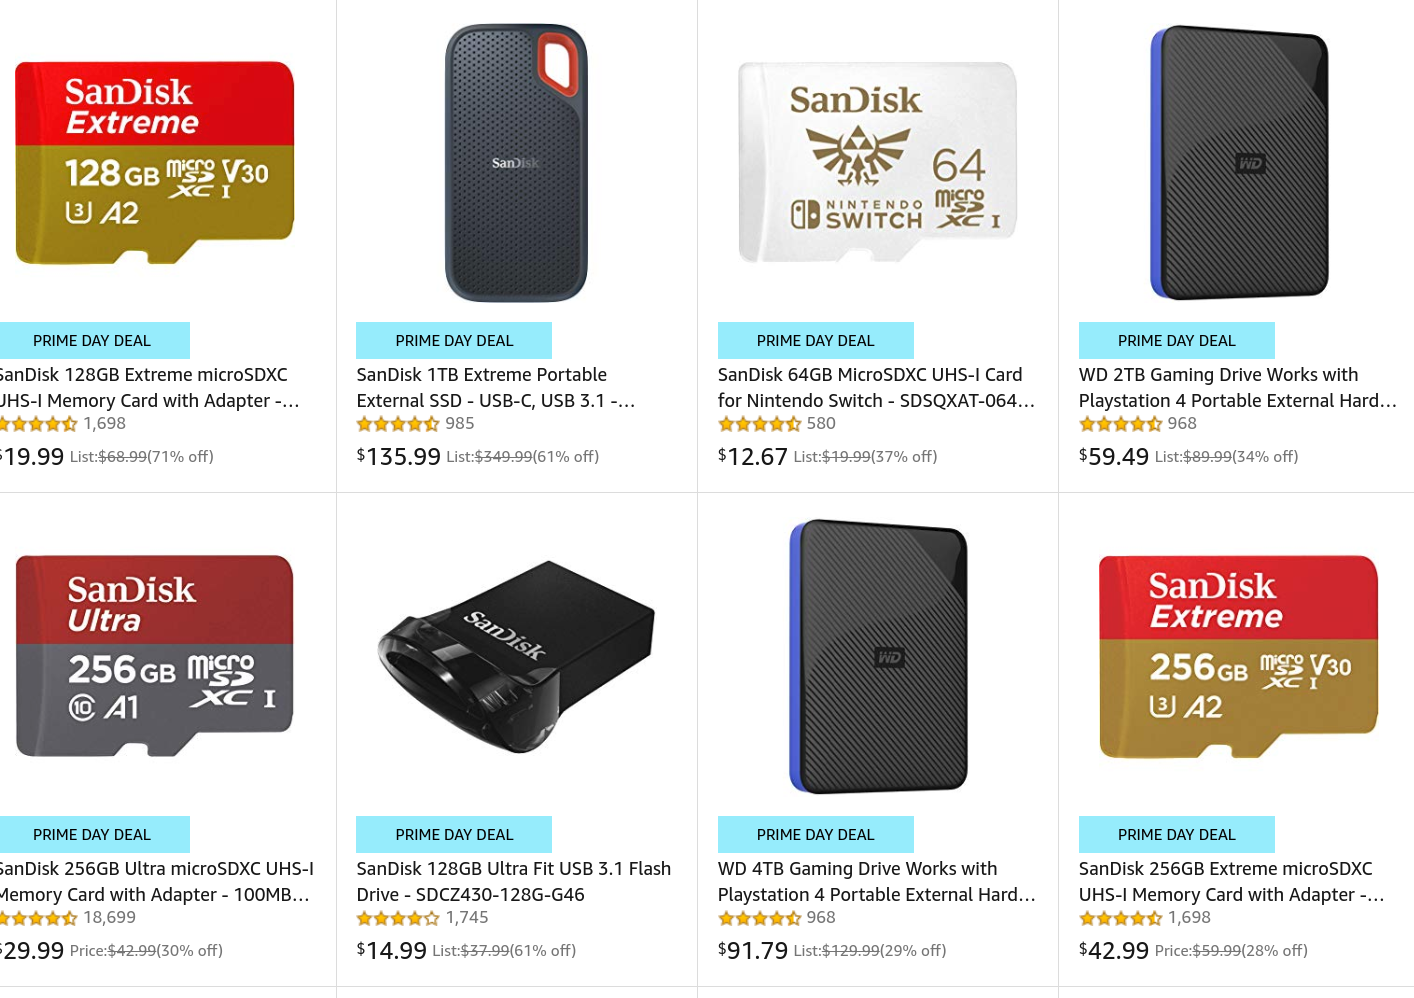 Sandisk and WD Discounts - https://amzn.to/2lrSJgV